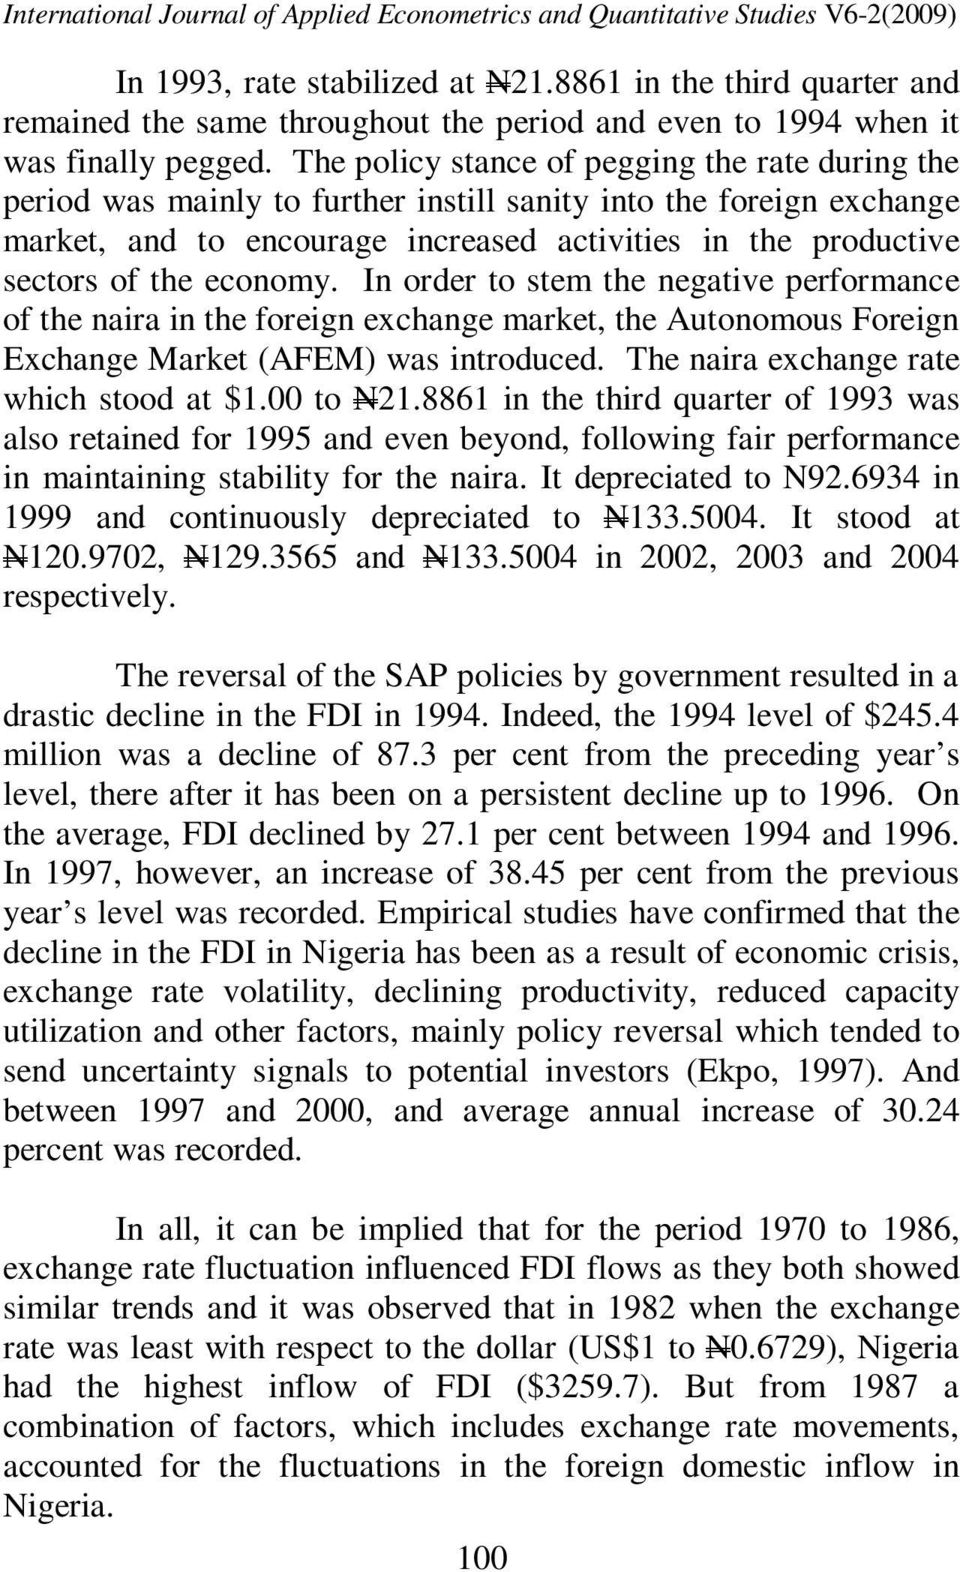 economy. In order to stem the negative performance of the naira in the foreign exchange market, the Autonomous Foreign Exchange Market (AFEM) was introduced. The naira exchange rate which stood at $1.